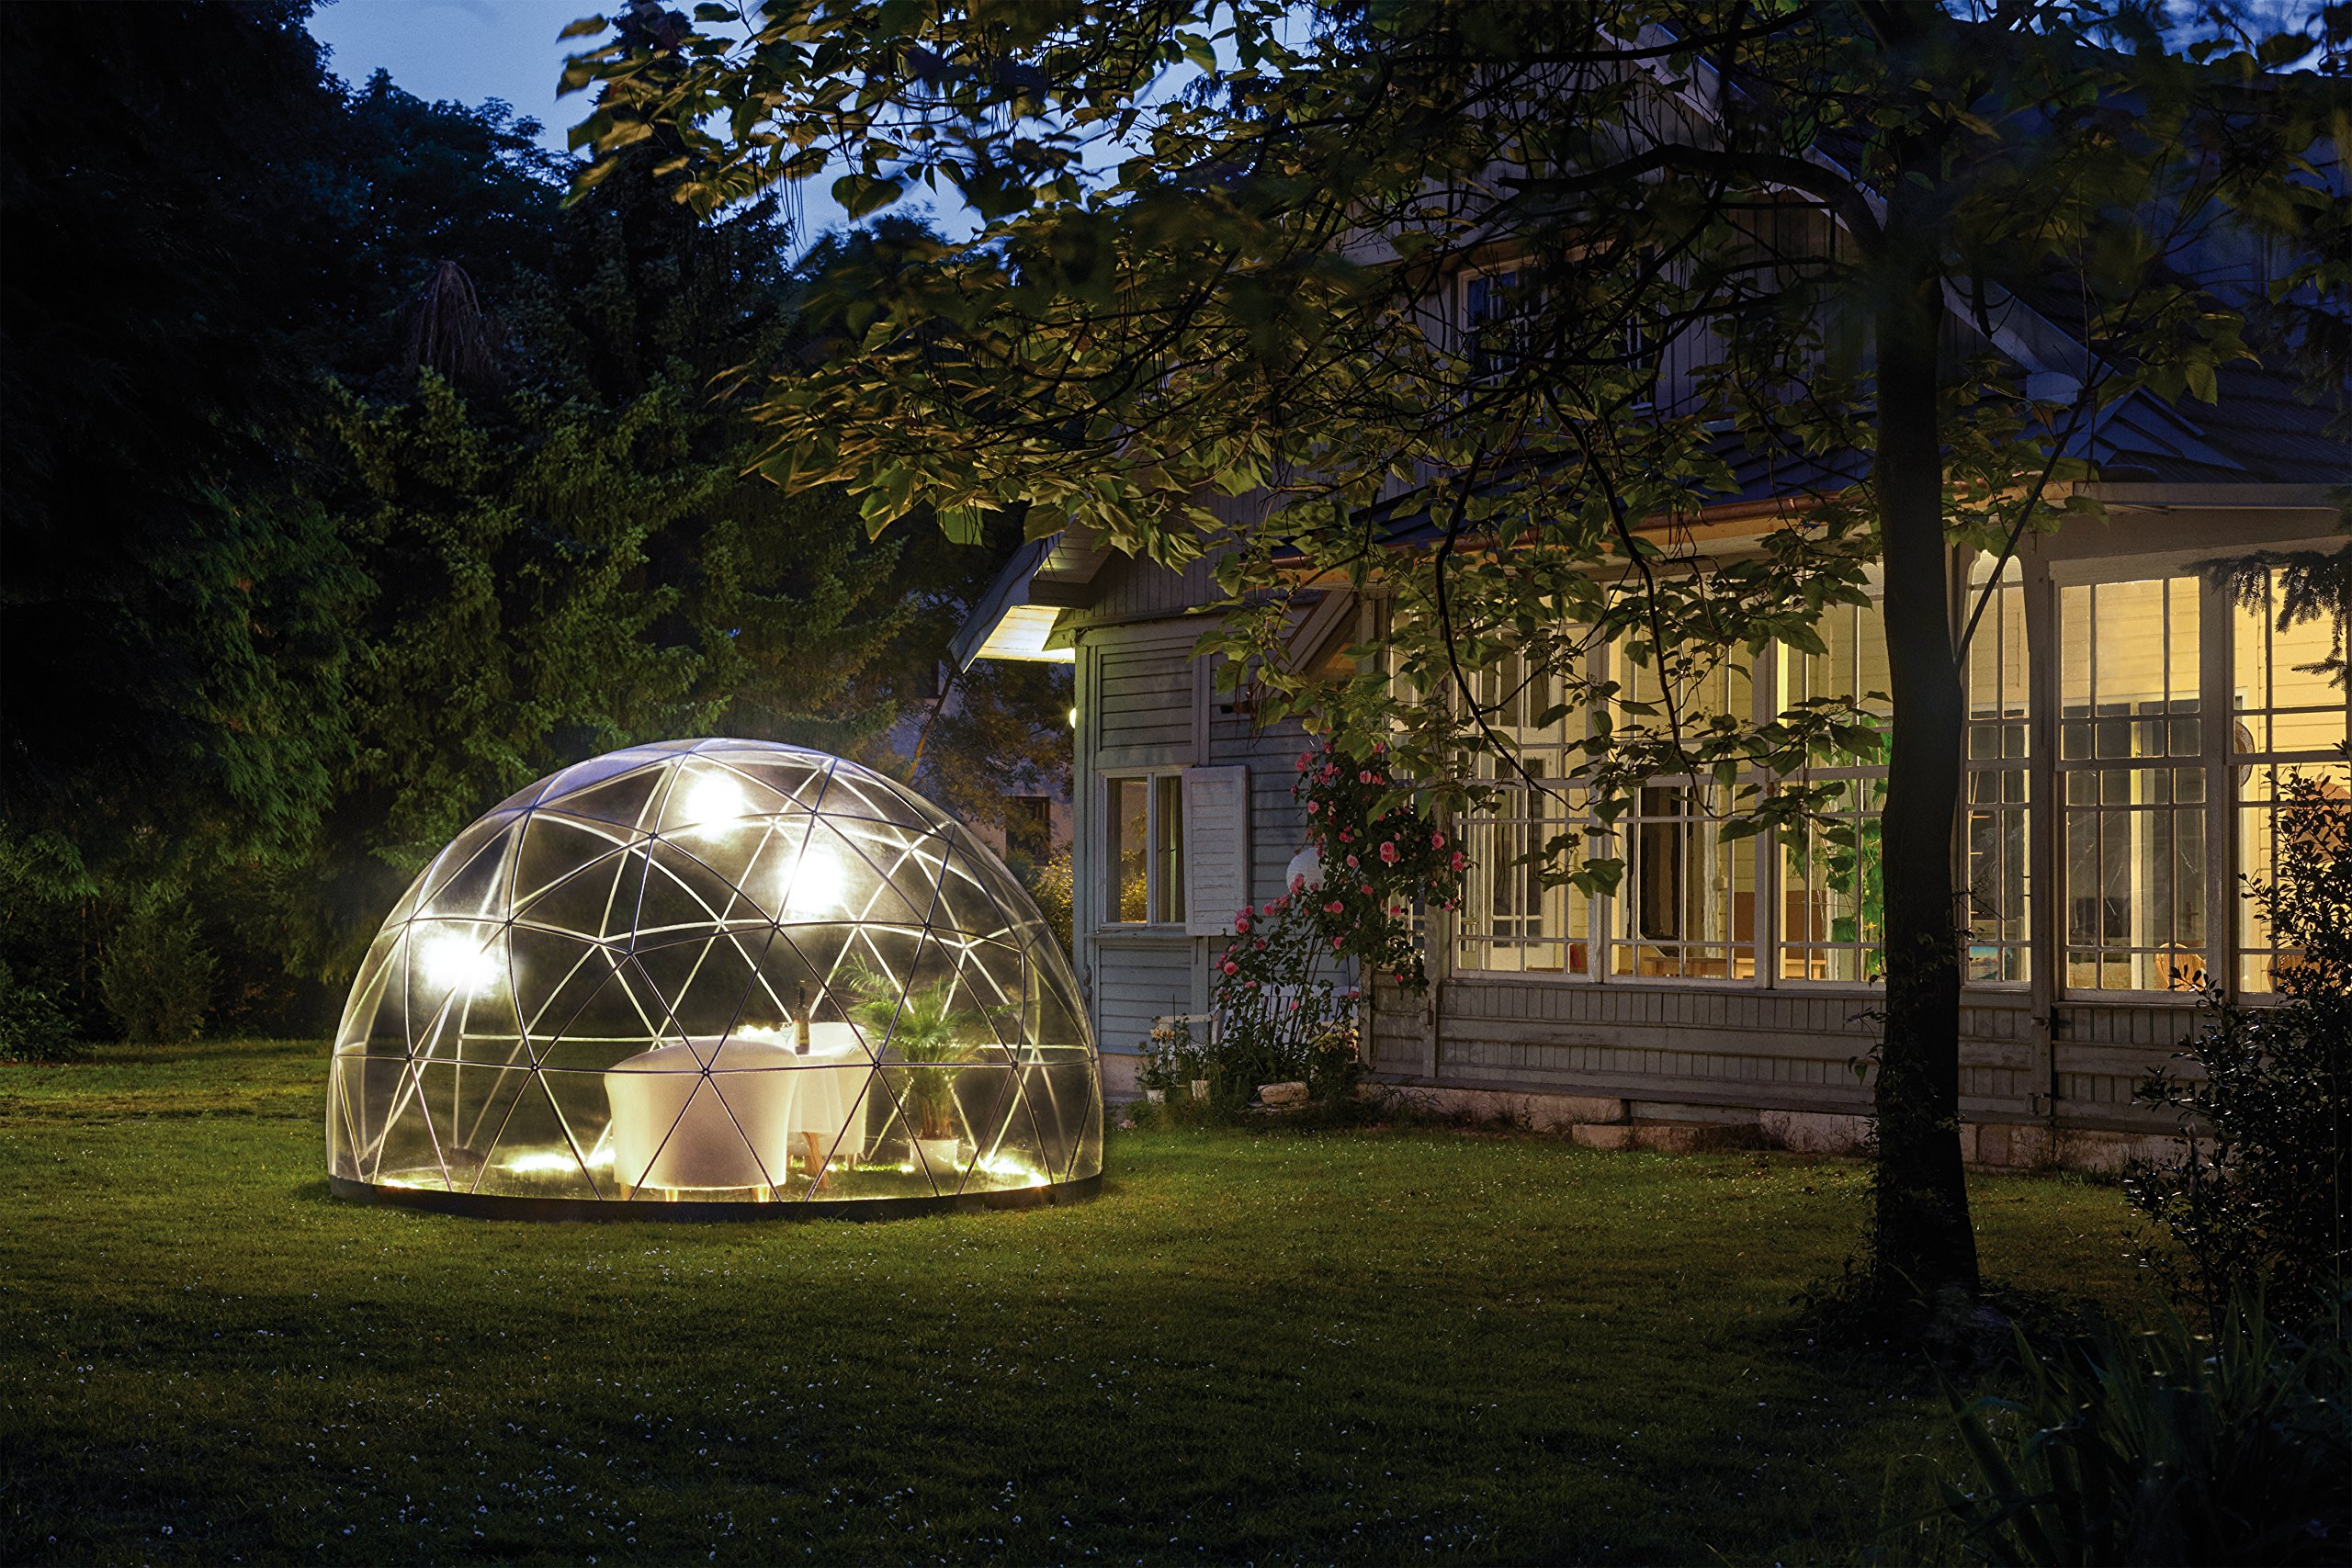 Garden Igloo 33244 Clear Greenhouse 142 X 142 X 87 inches 4